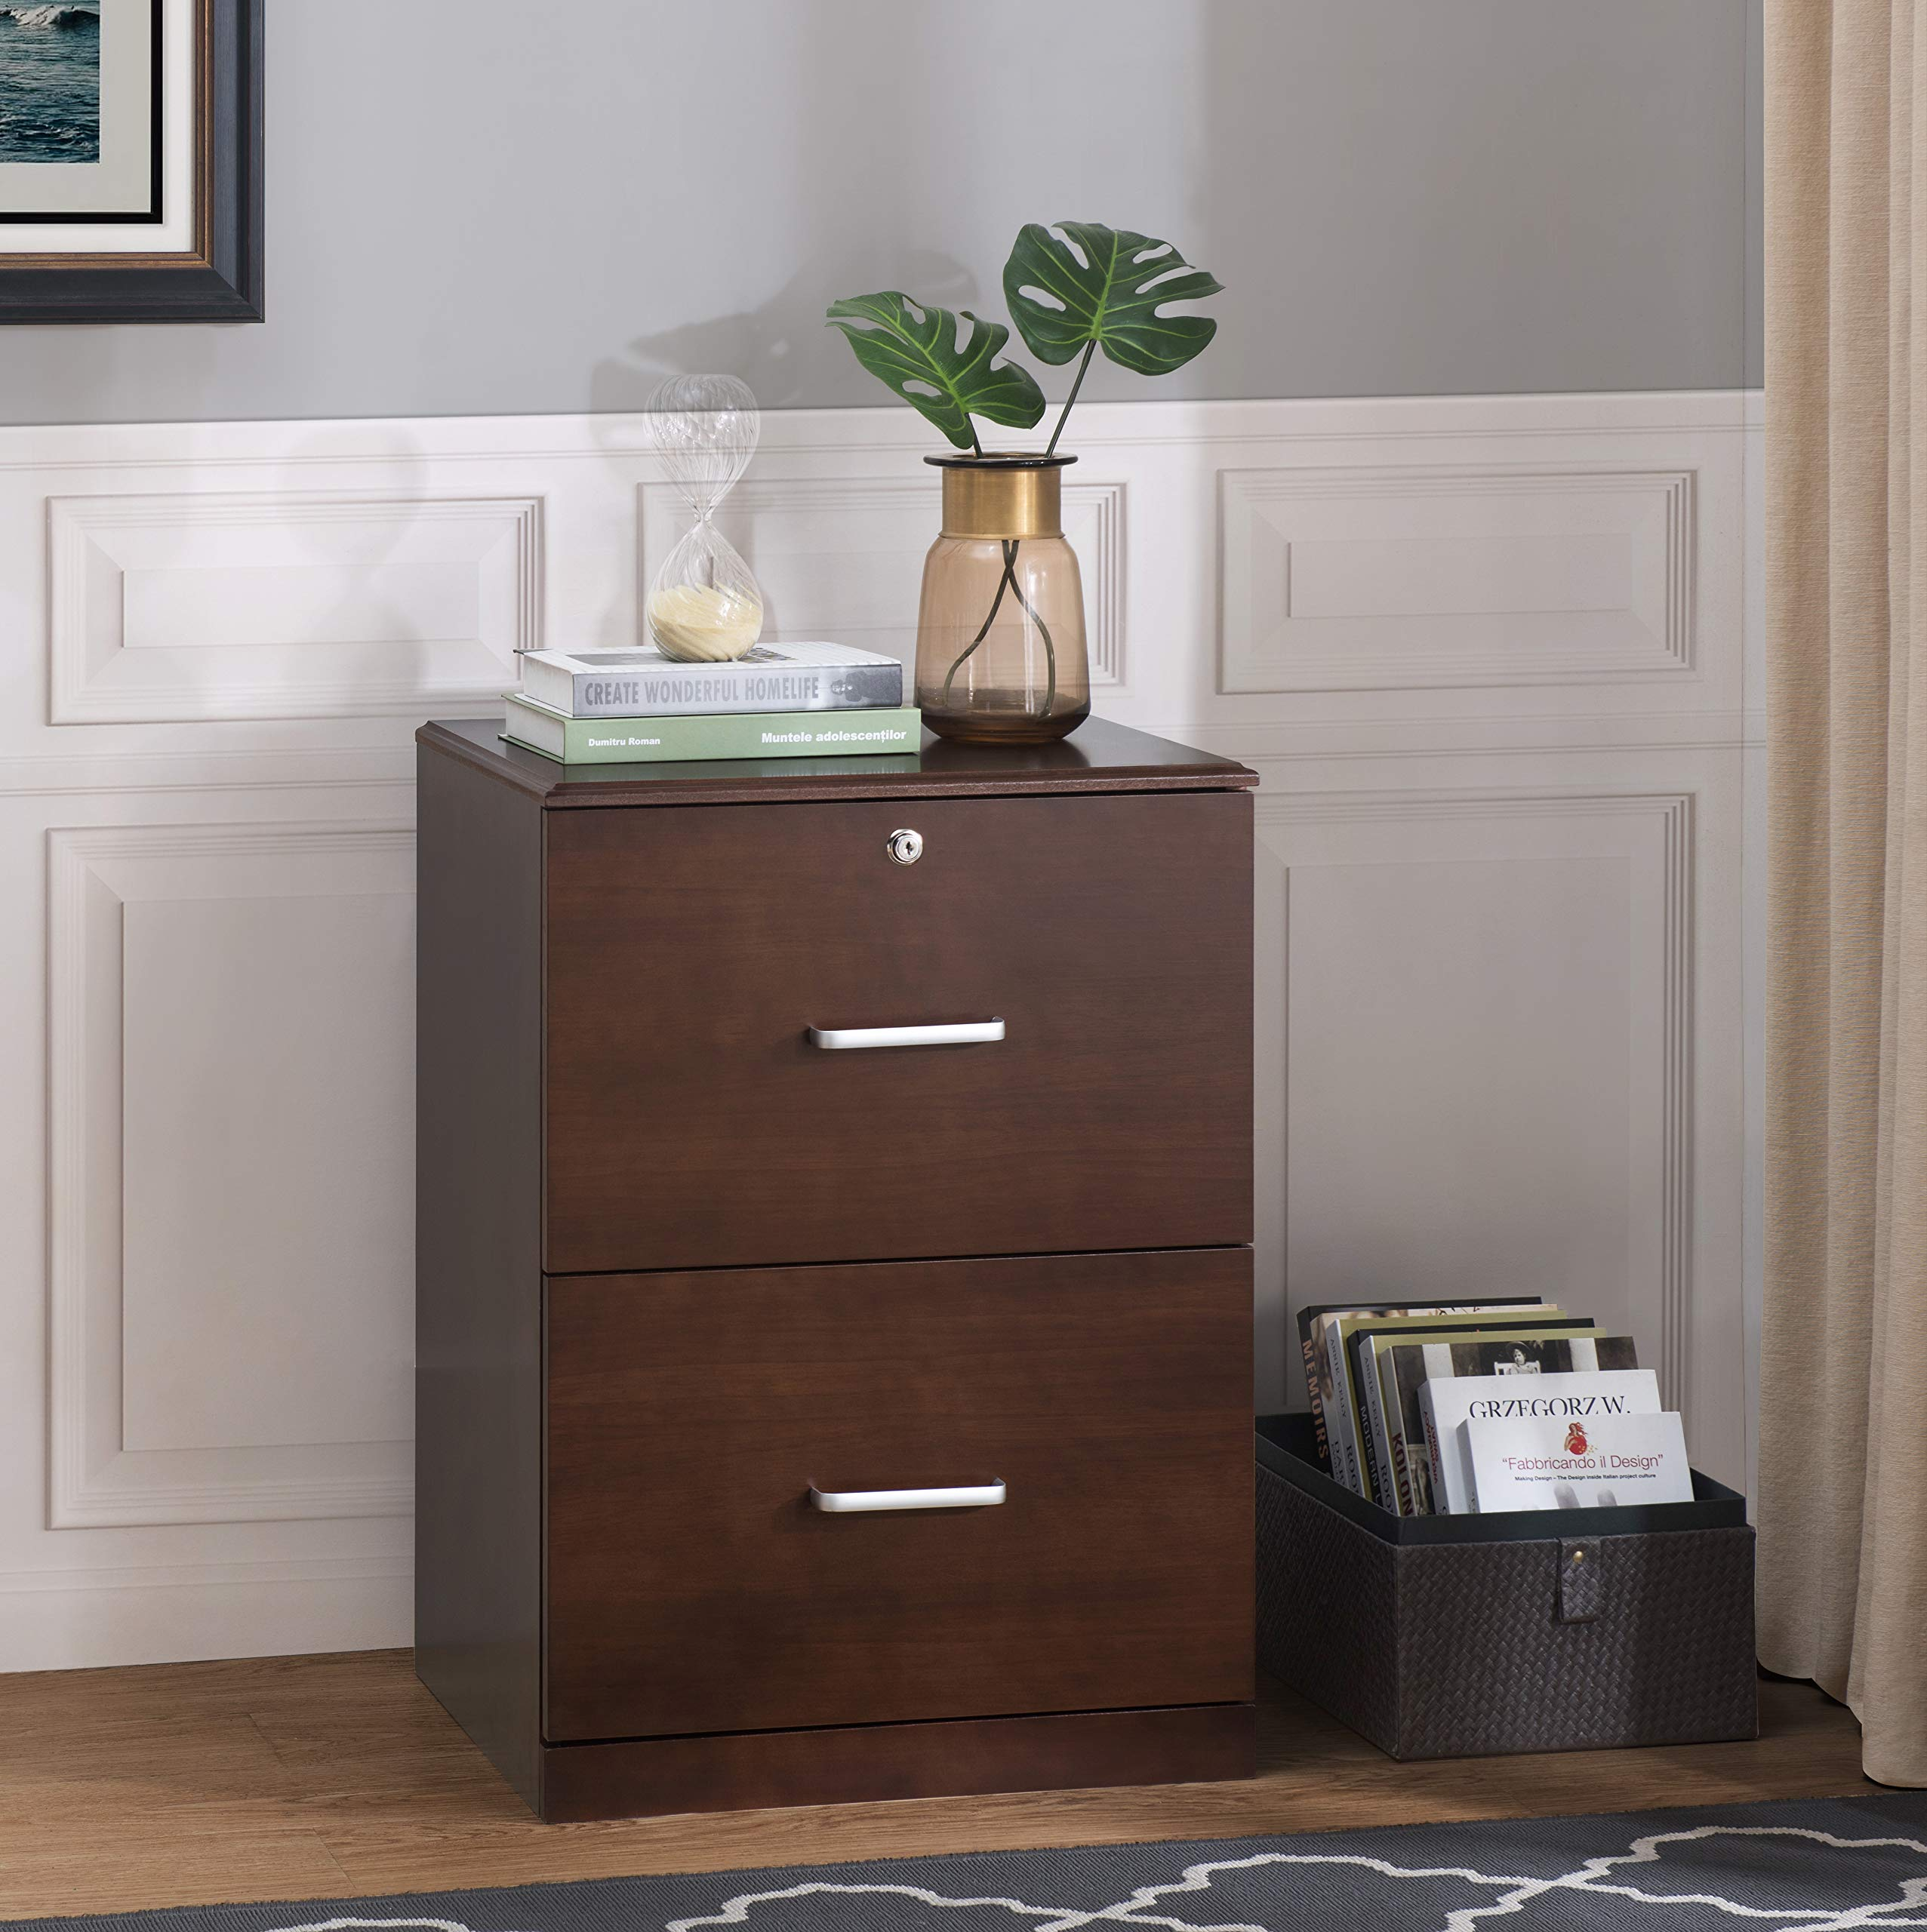 2L Lifestyle Henley File Cabinet, Brown